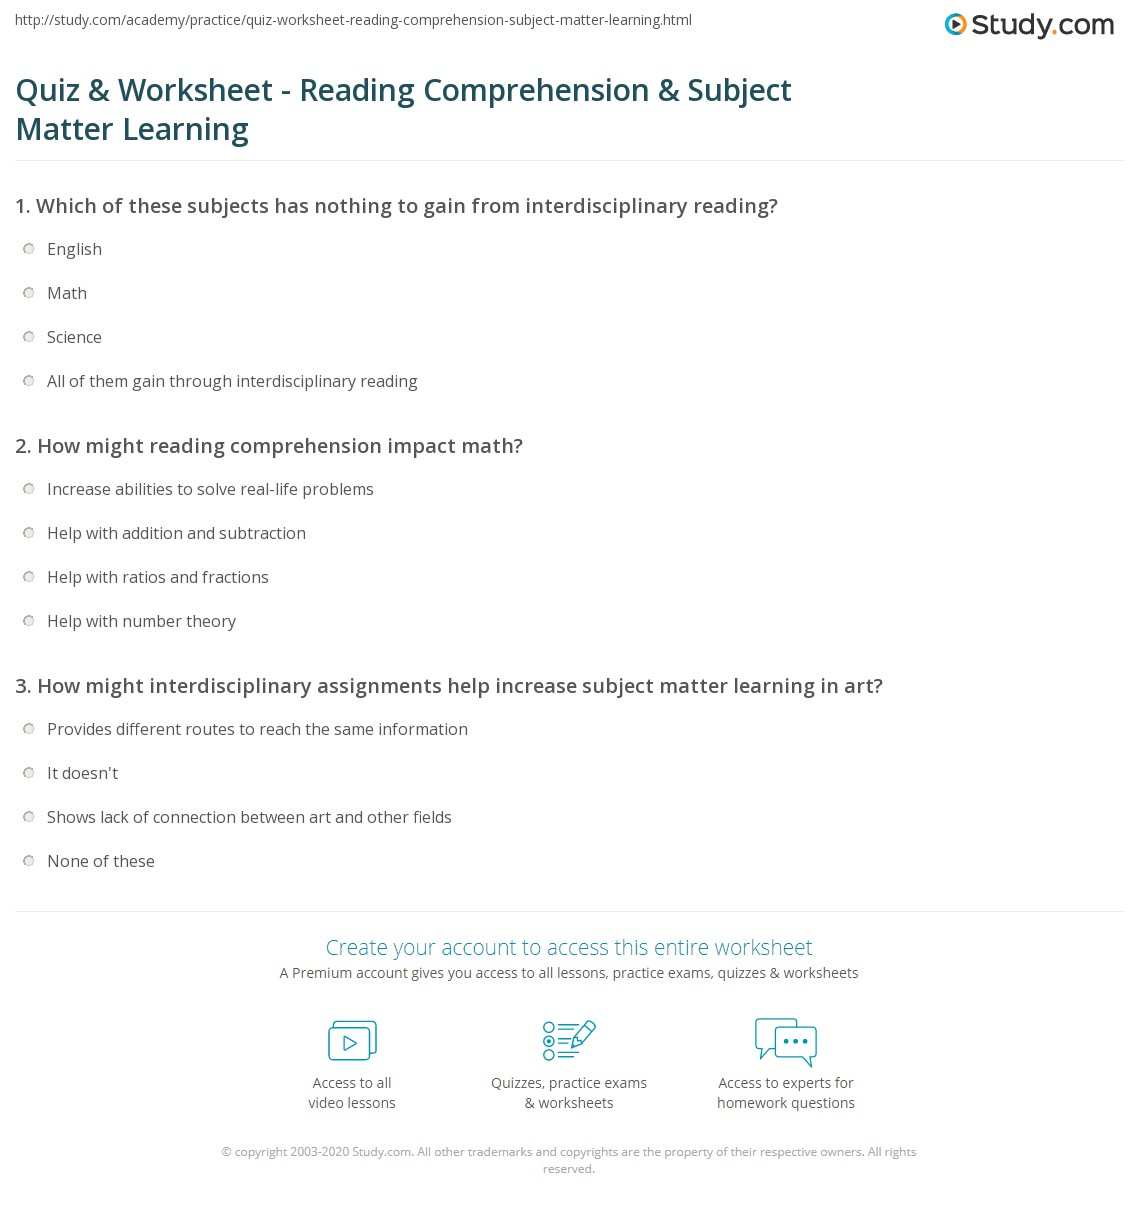 quiz worksheet reading comprehension subject matter learning